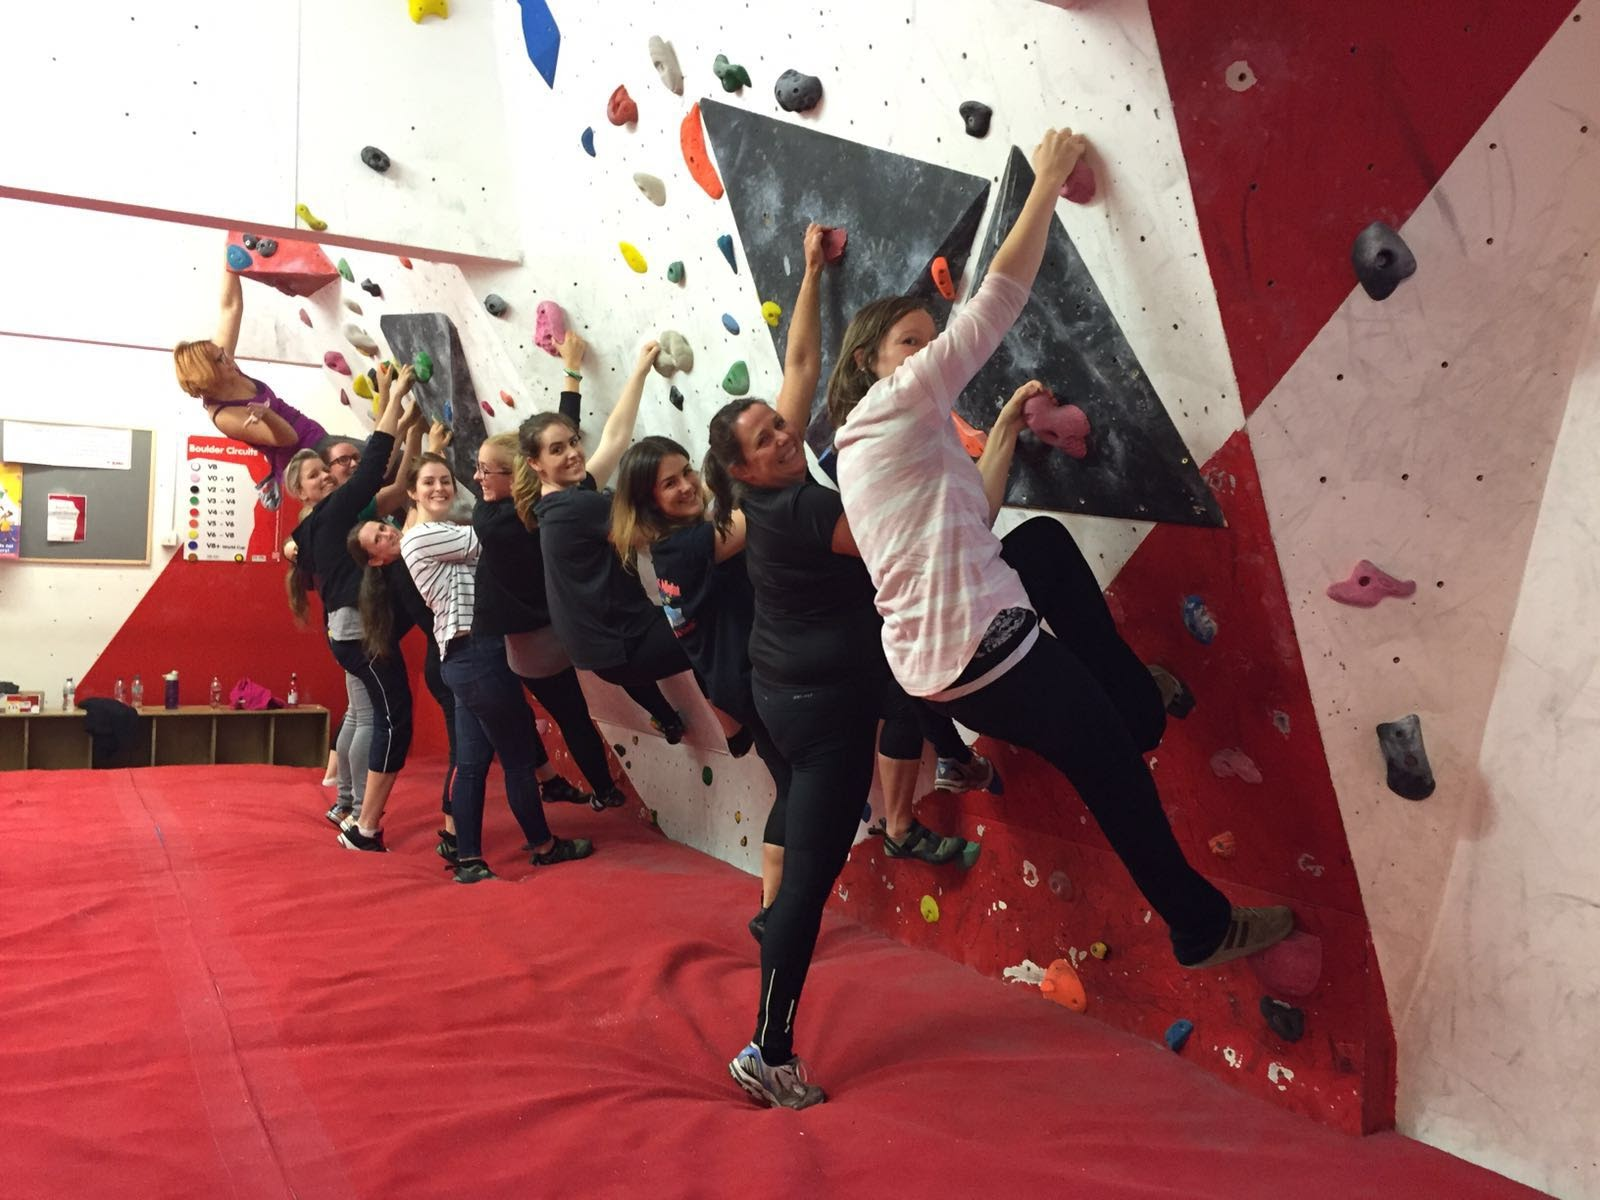 Women Climb – beginner rock climbing event